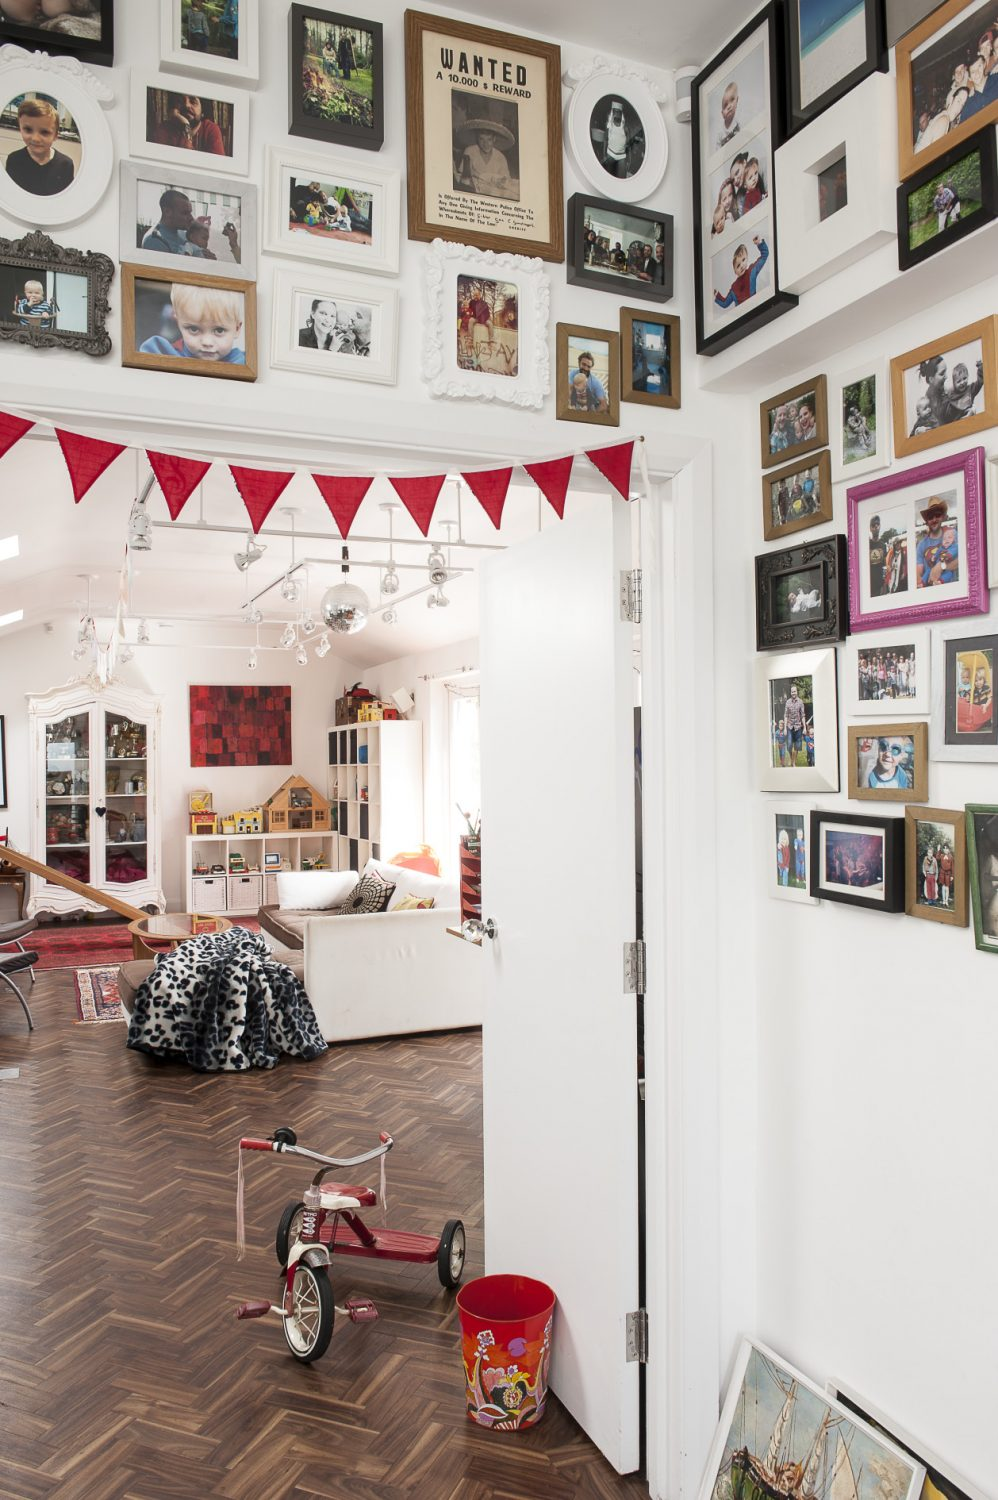 Hordes of photographs mounted along the walls that lead to the family den chart the family's lives